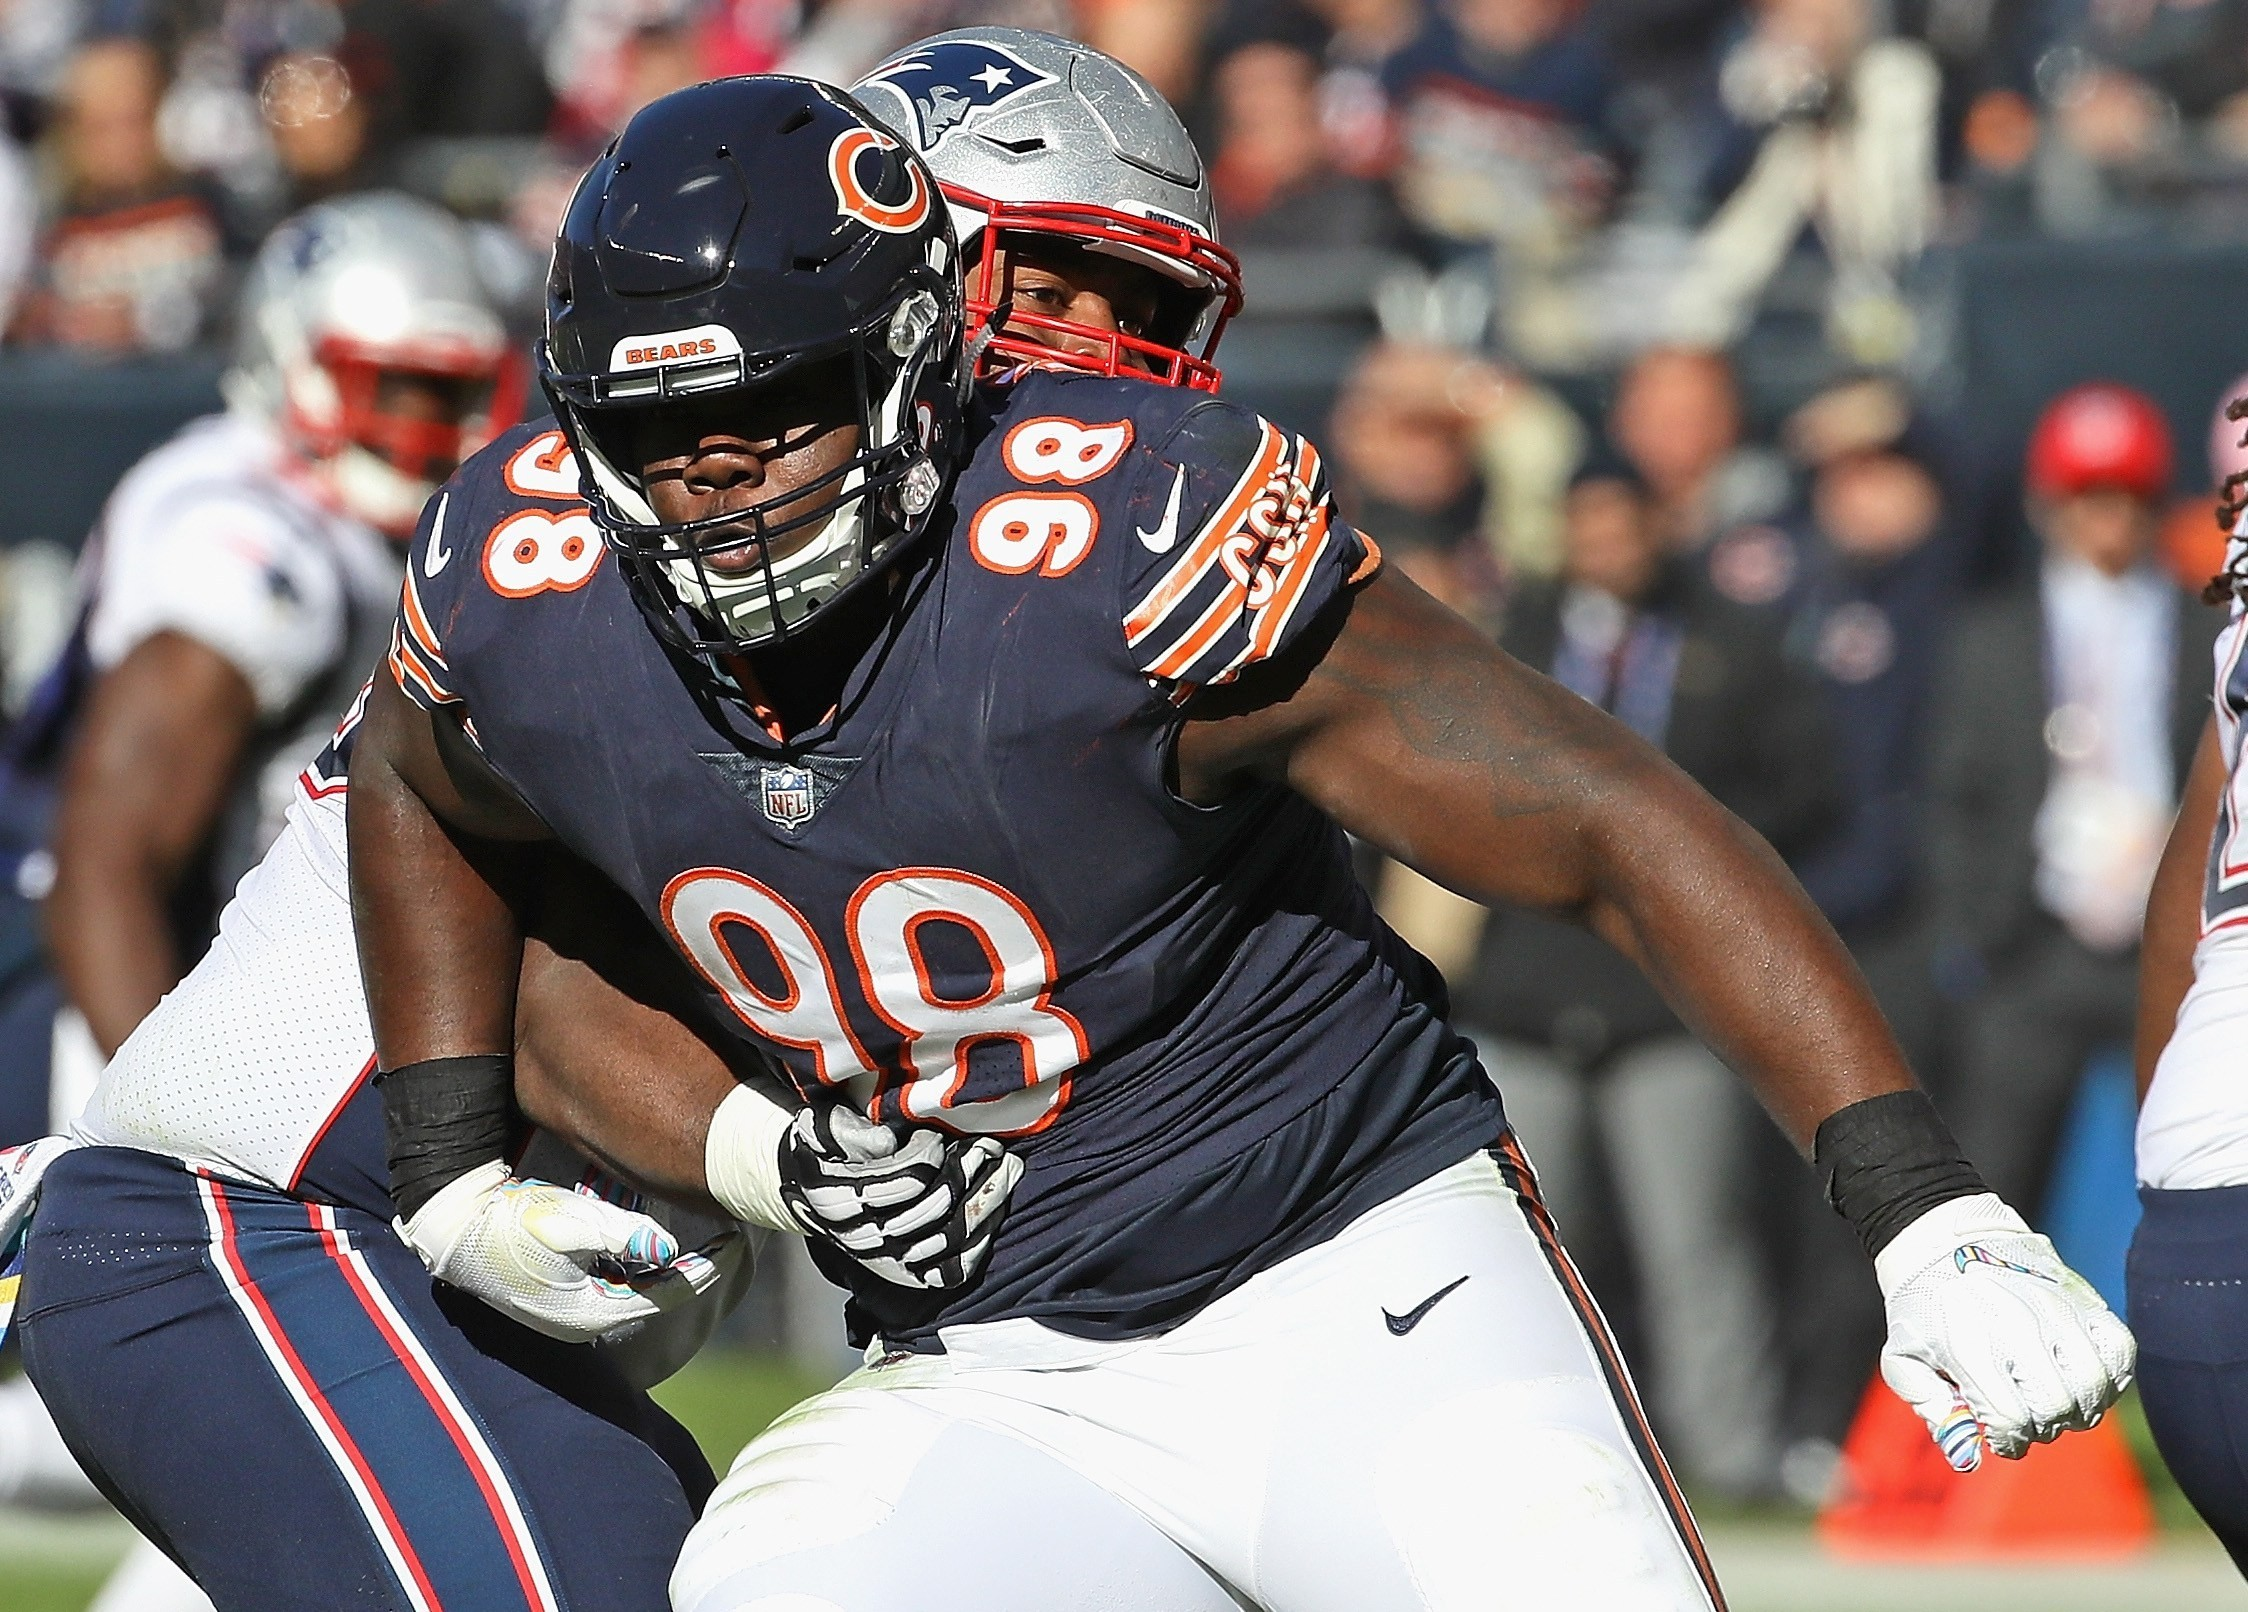 2248x1612 2018 Chicago Bears Rush Report 2018 Week 7 vs the Patriots Windy City  Gridiron